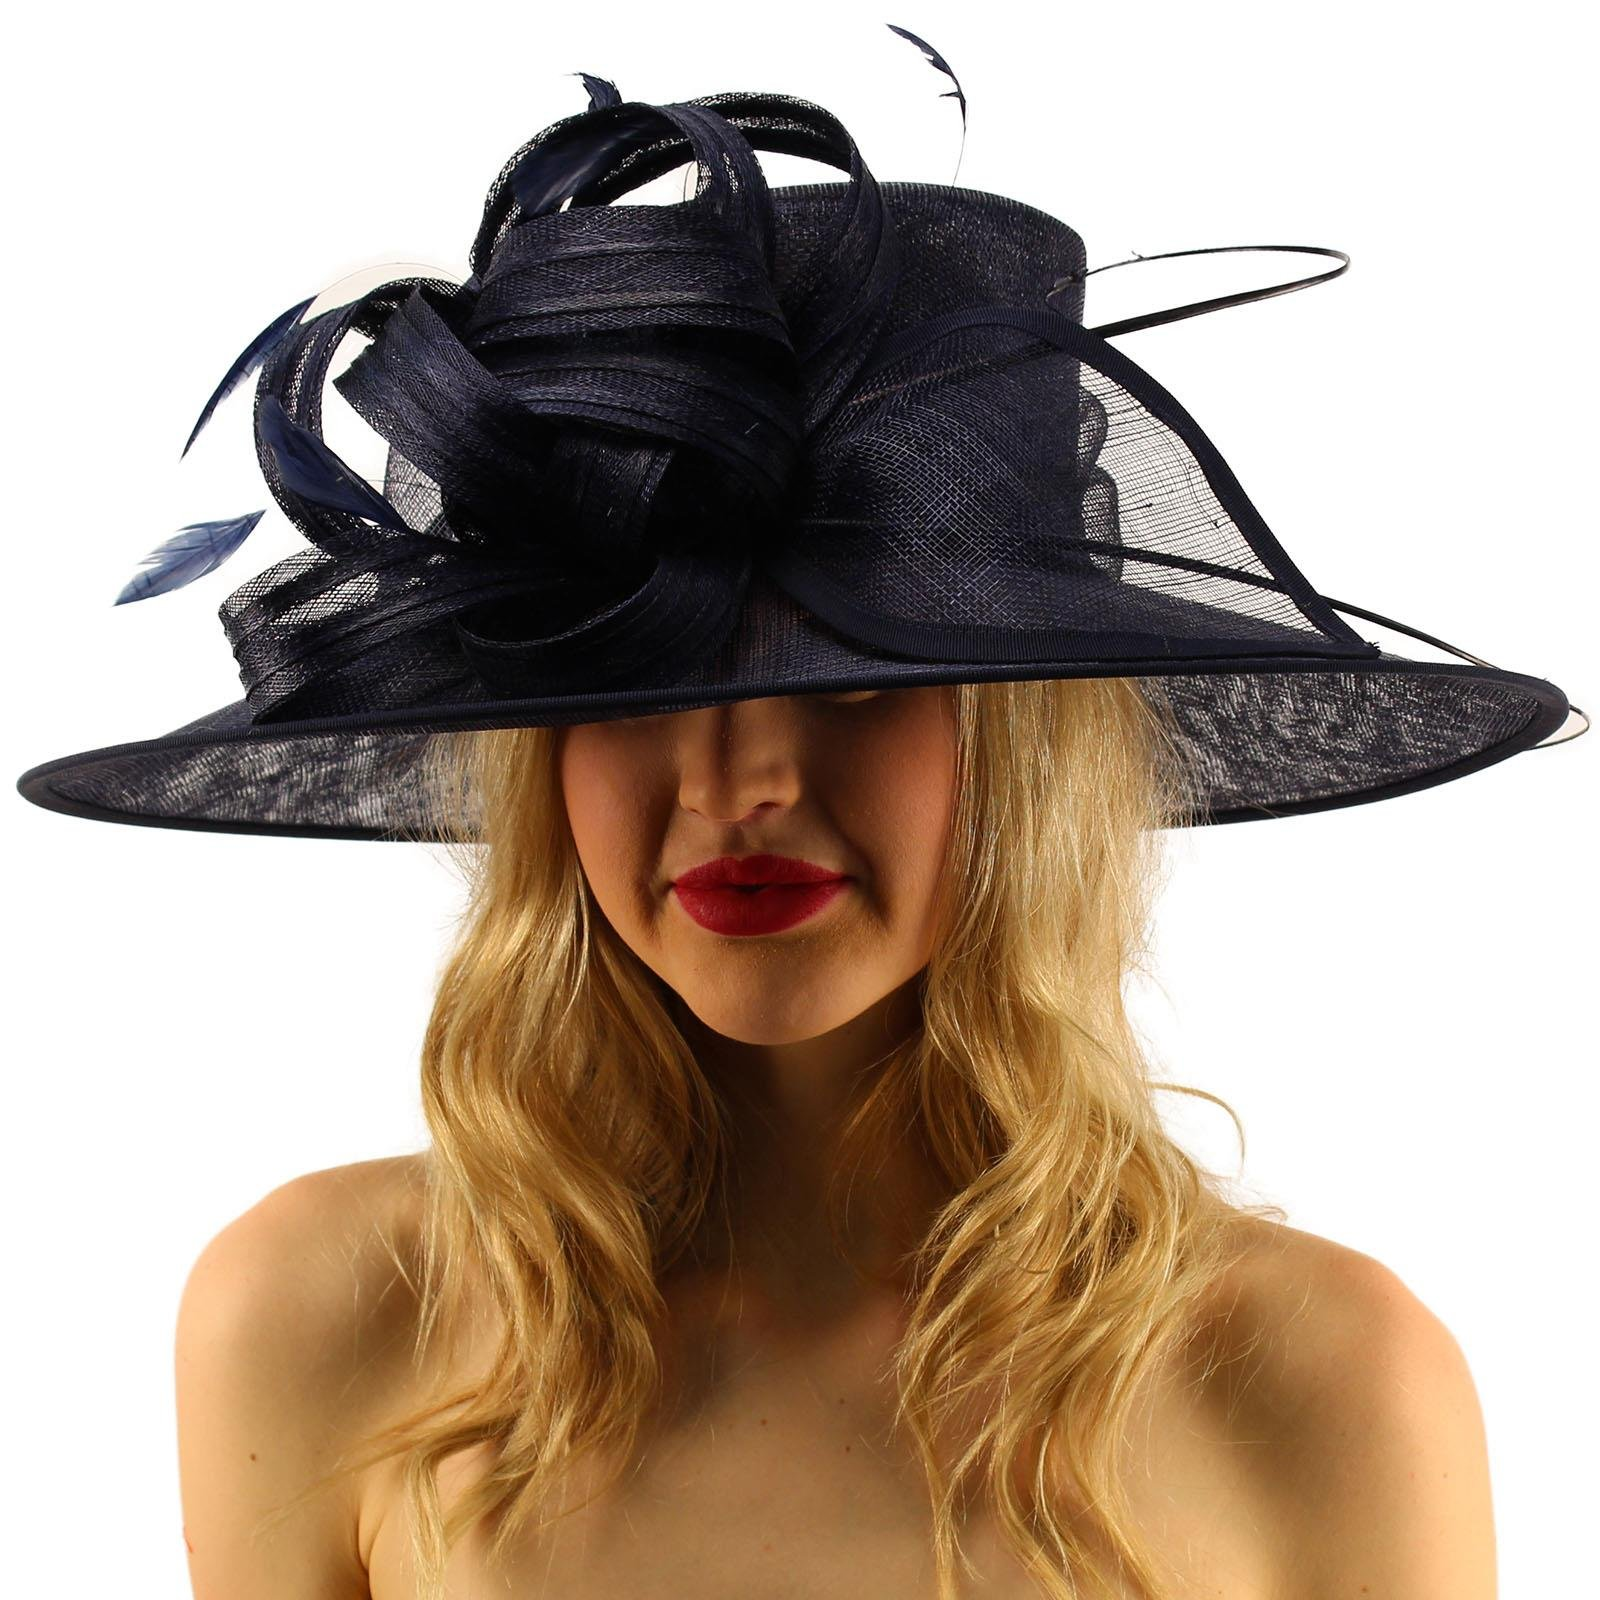 British Regal Sinamy Ribbon Feathers Quill Derby Floppy Bucket Dressy Hat Navy by SK Hat shop (Image #2)